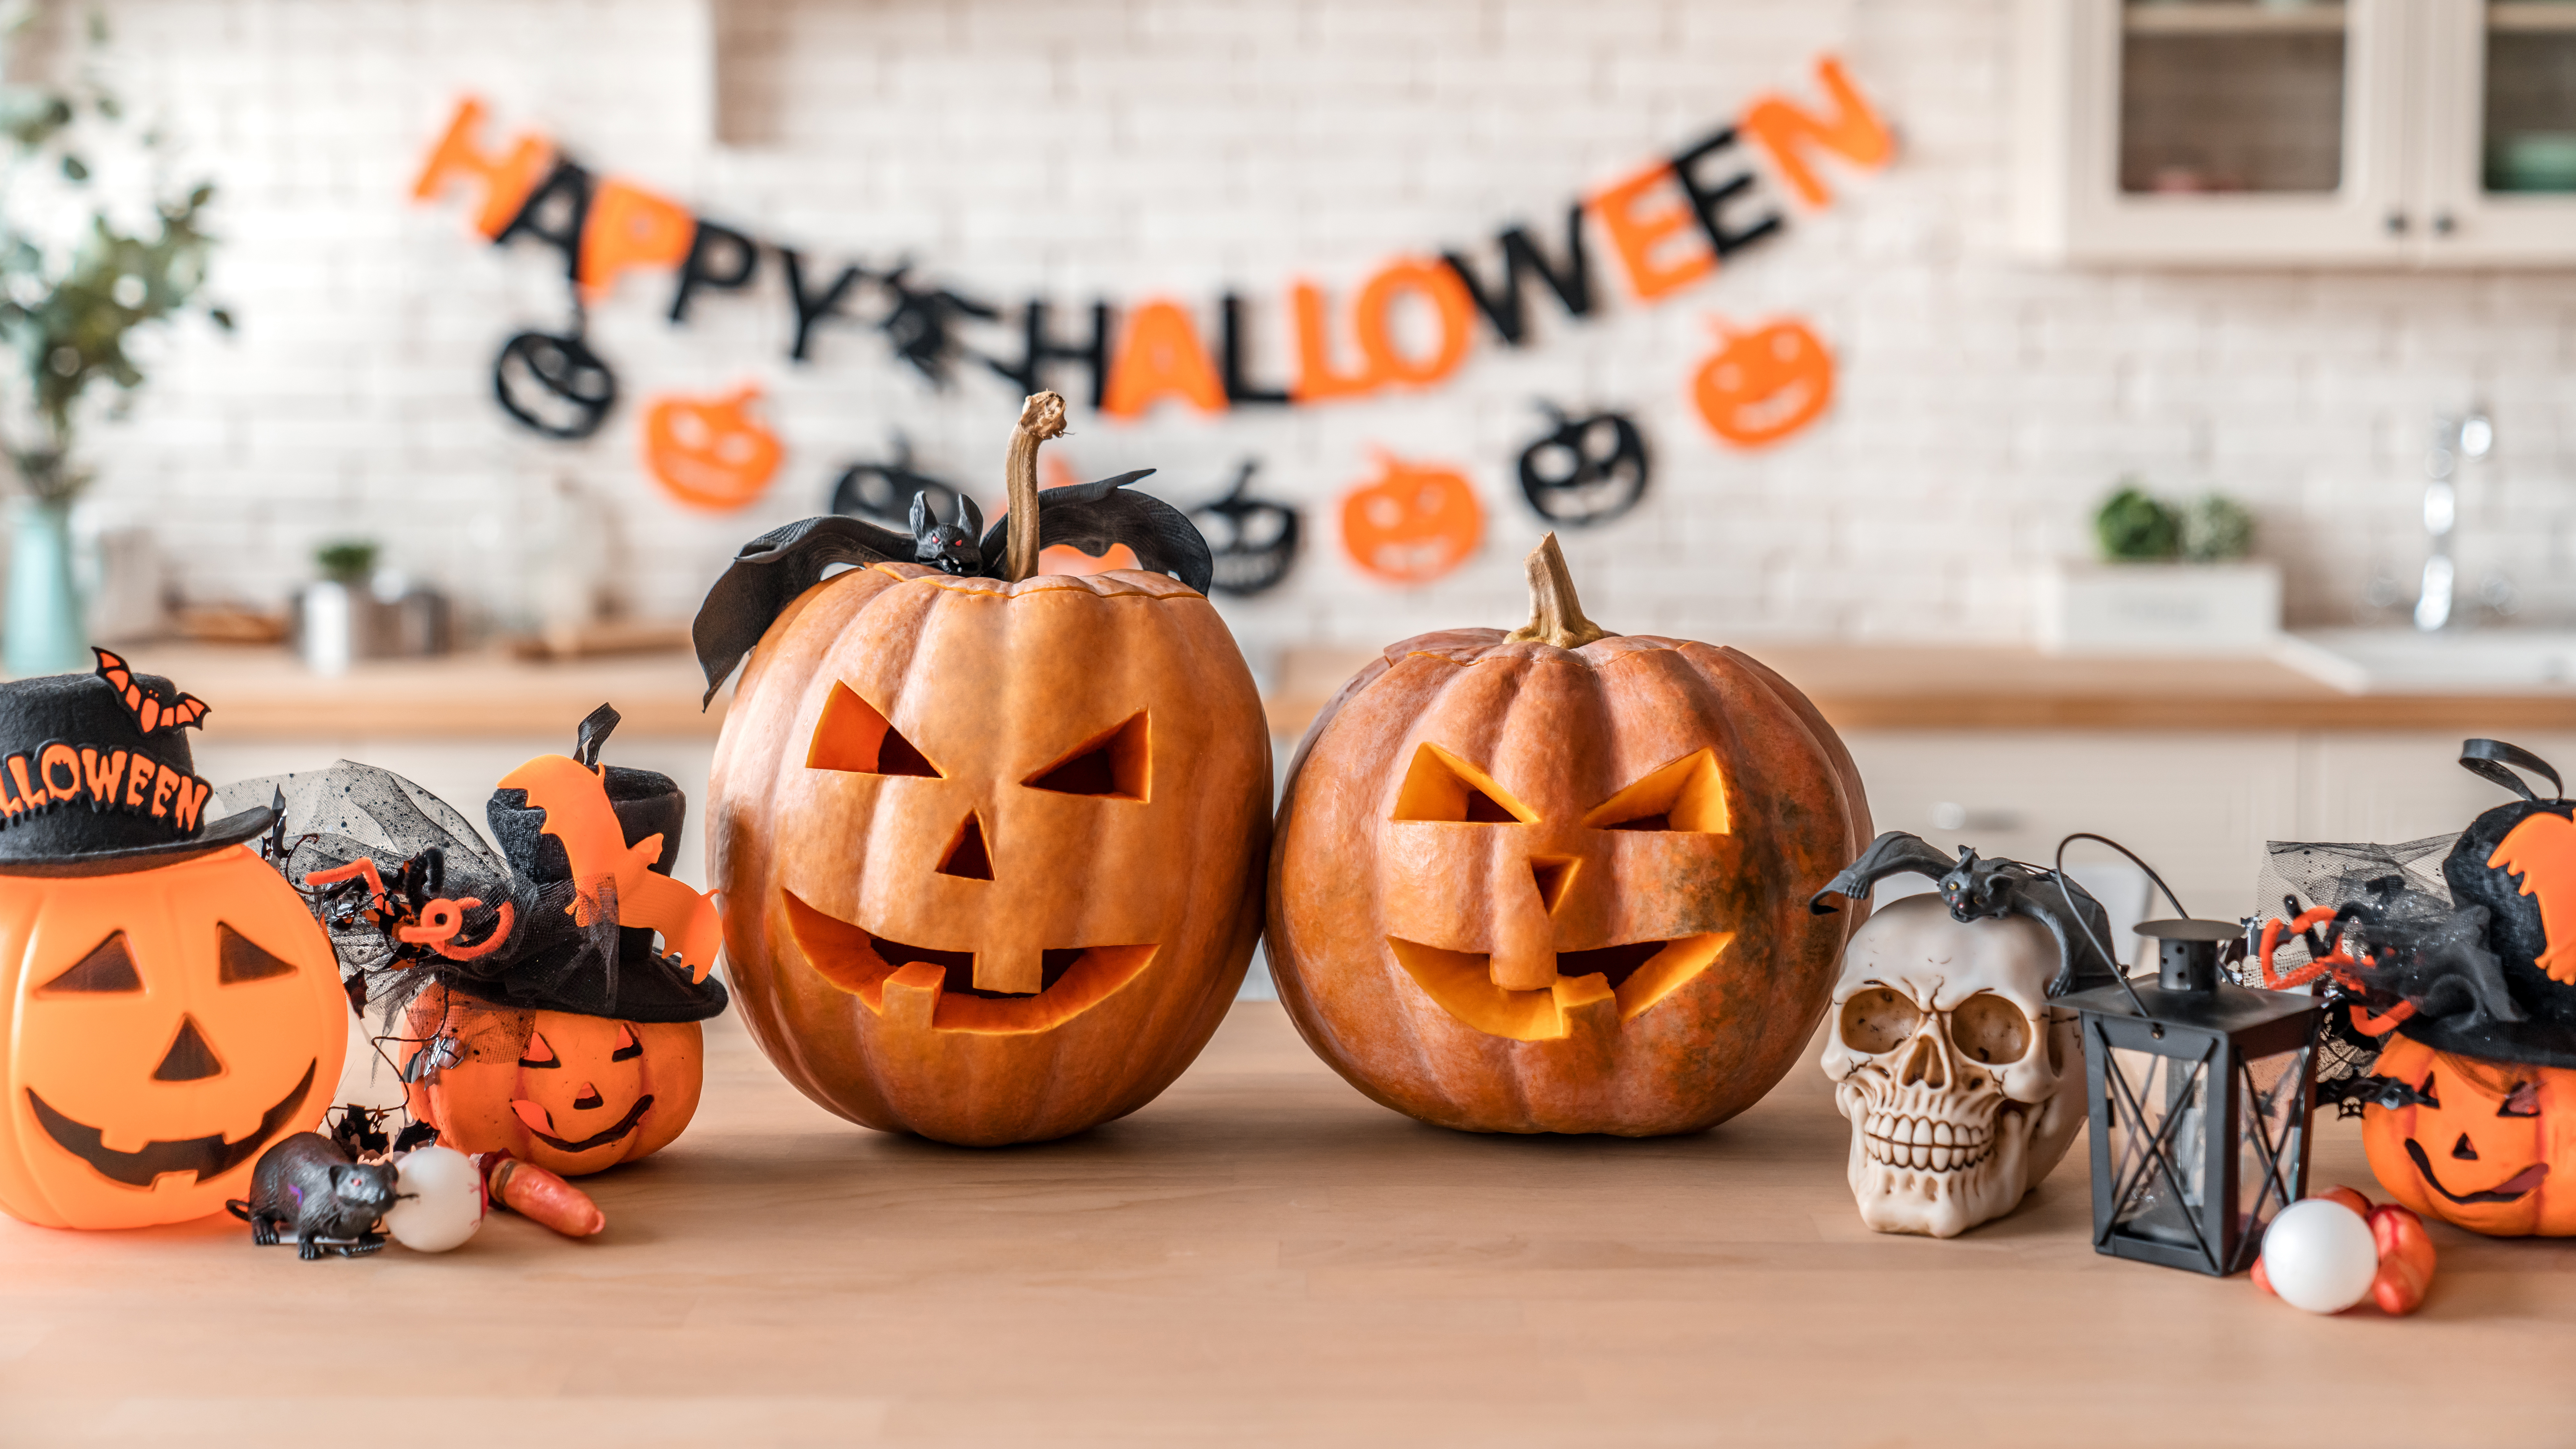 Happy Halloween! Pumpkin Jack lantern with for family holiday at home